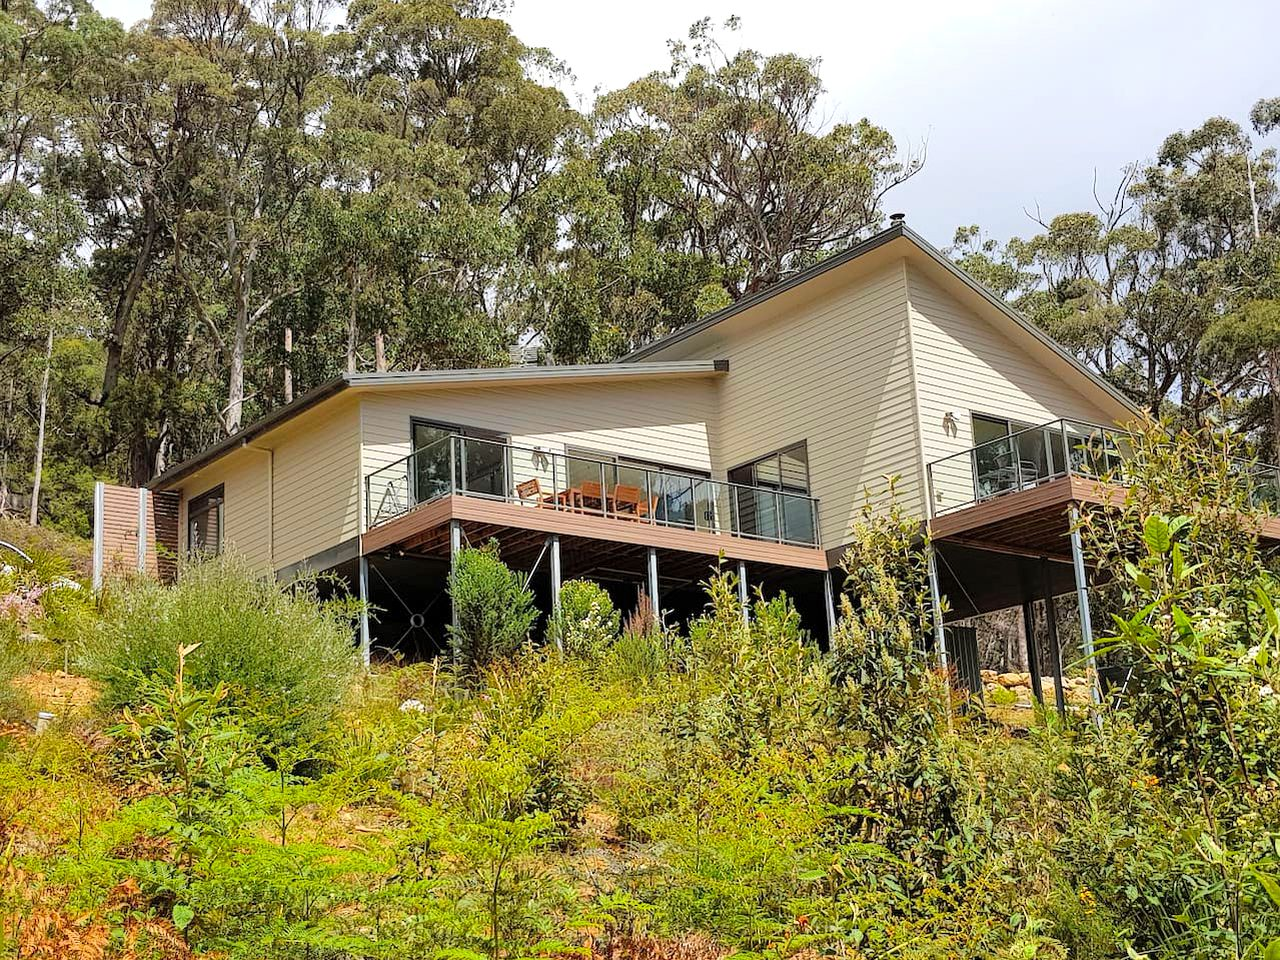 This Cradle Mountain accommodation sitting pretty among the flora, is the ideal Tasmania getaway